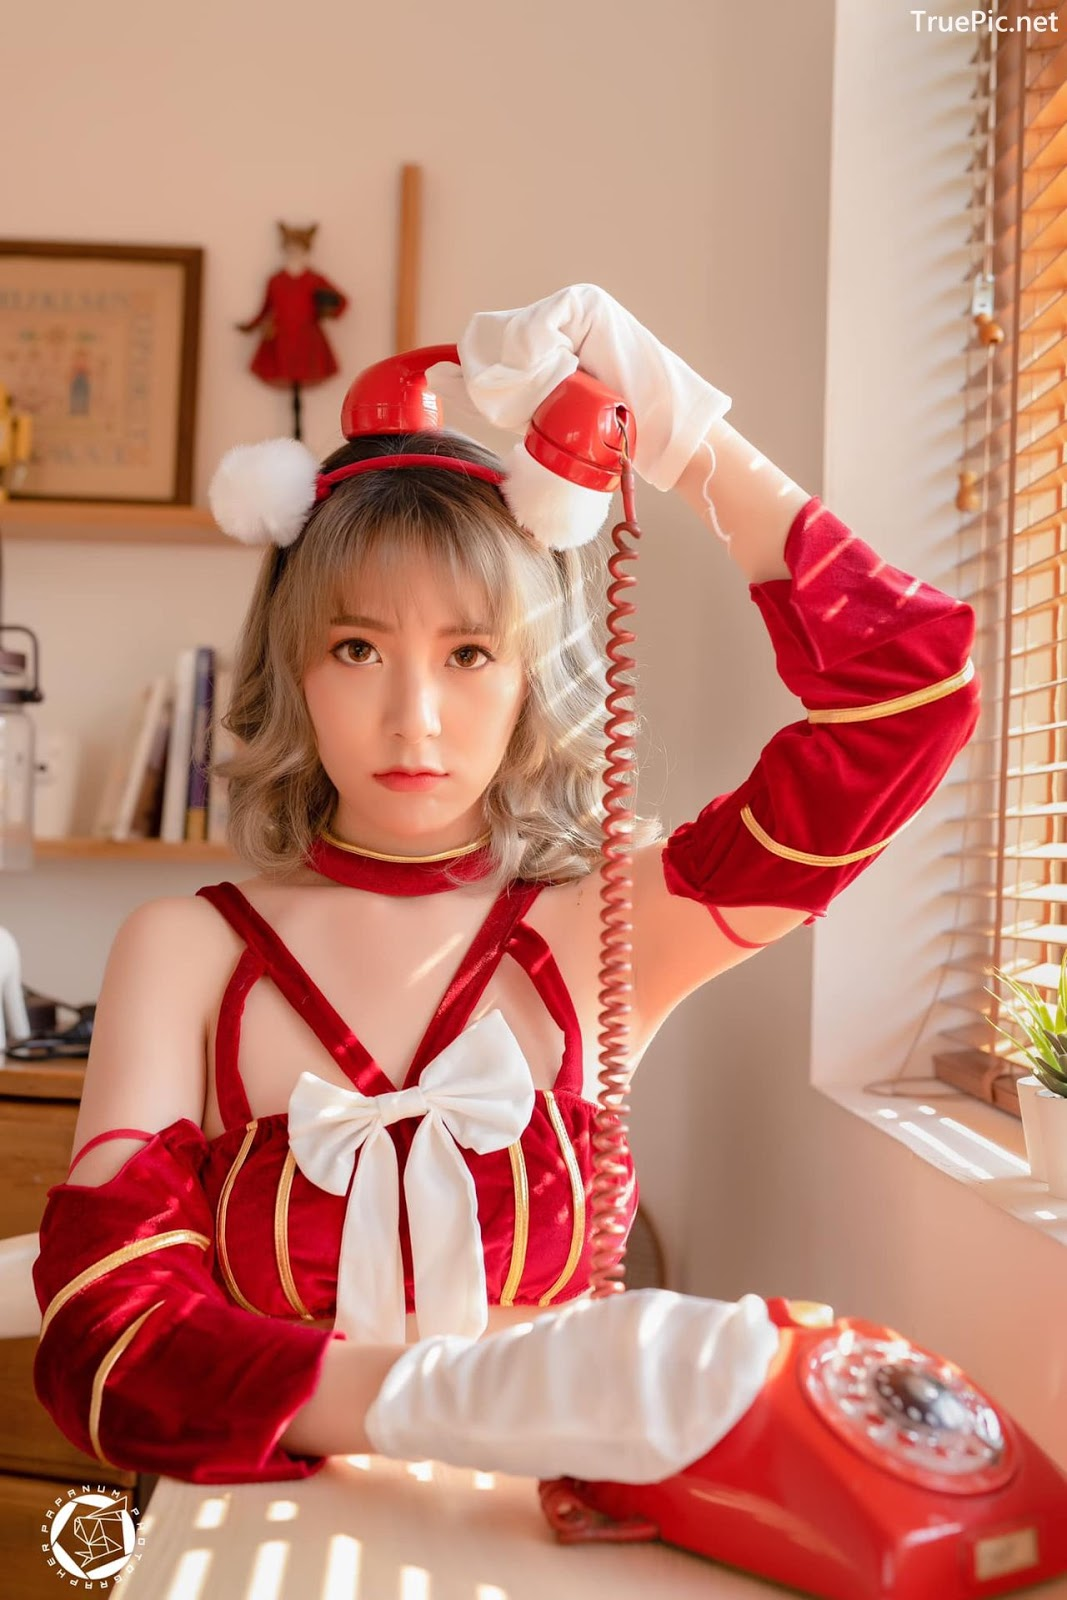 Image-Thailand-Cute-Model-Rattanaporn-Sitthisanguanthai-Red-Valentines-TruePic.net- Picture-2